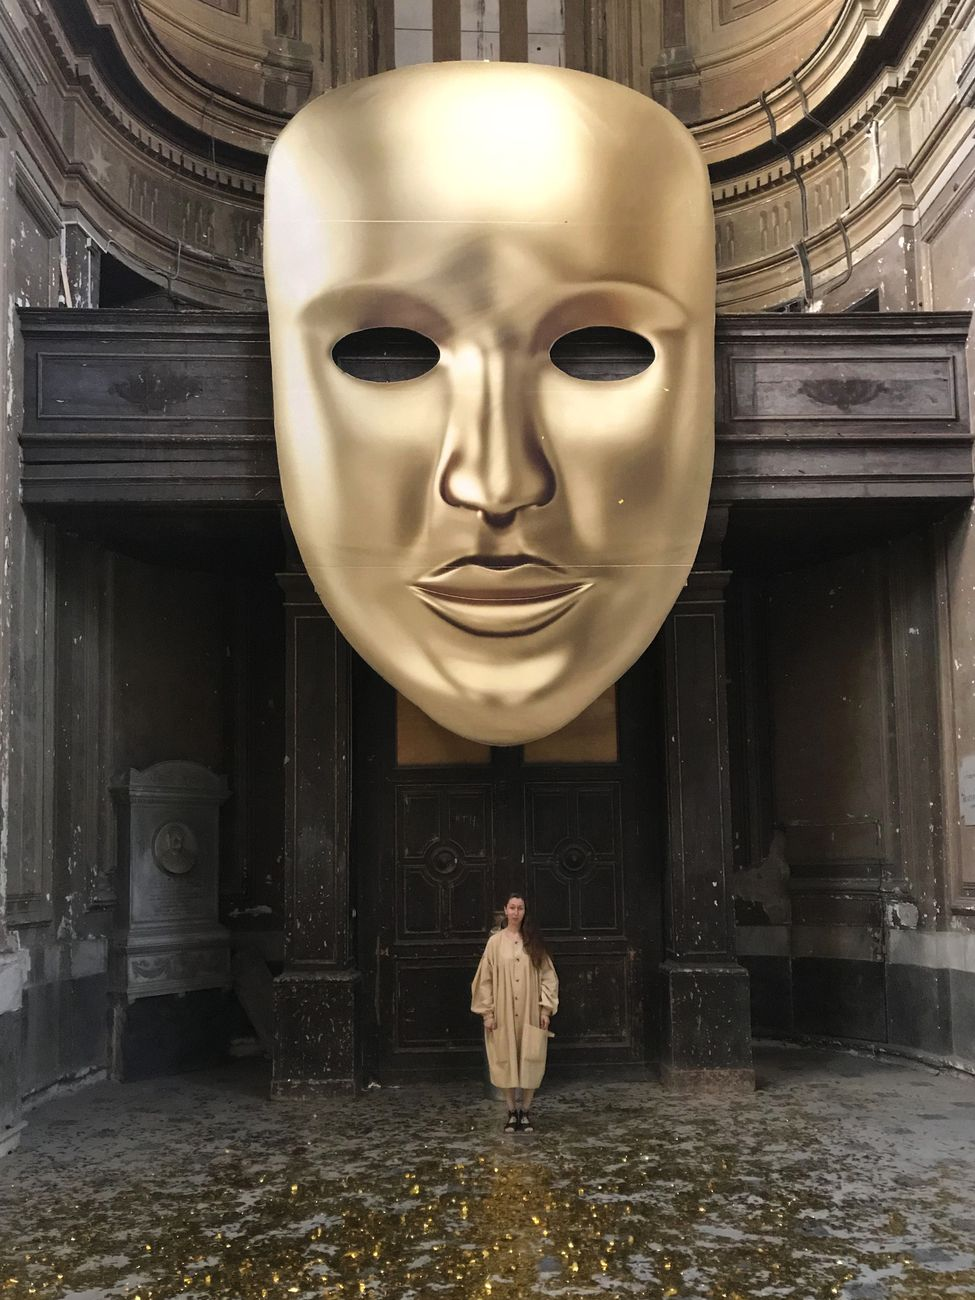 Evgeny Antufiev. Dead Nations. Golden Age Version. Installation view at Chiesa di San Giuseppe delle Scalze, Napoli 2019